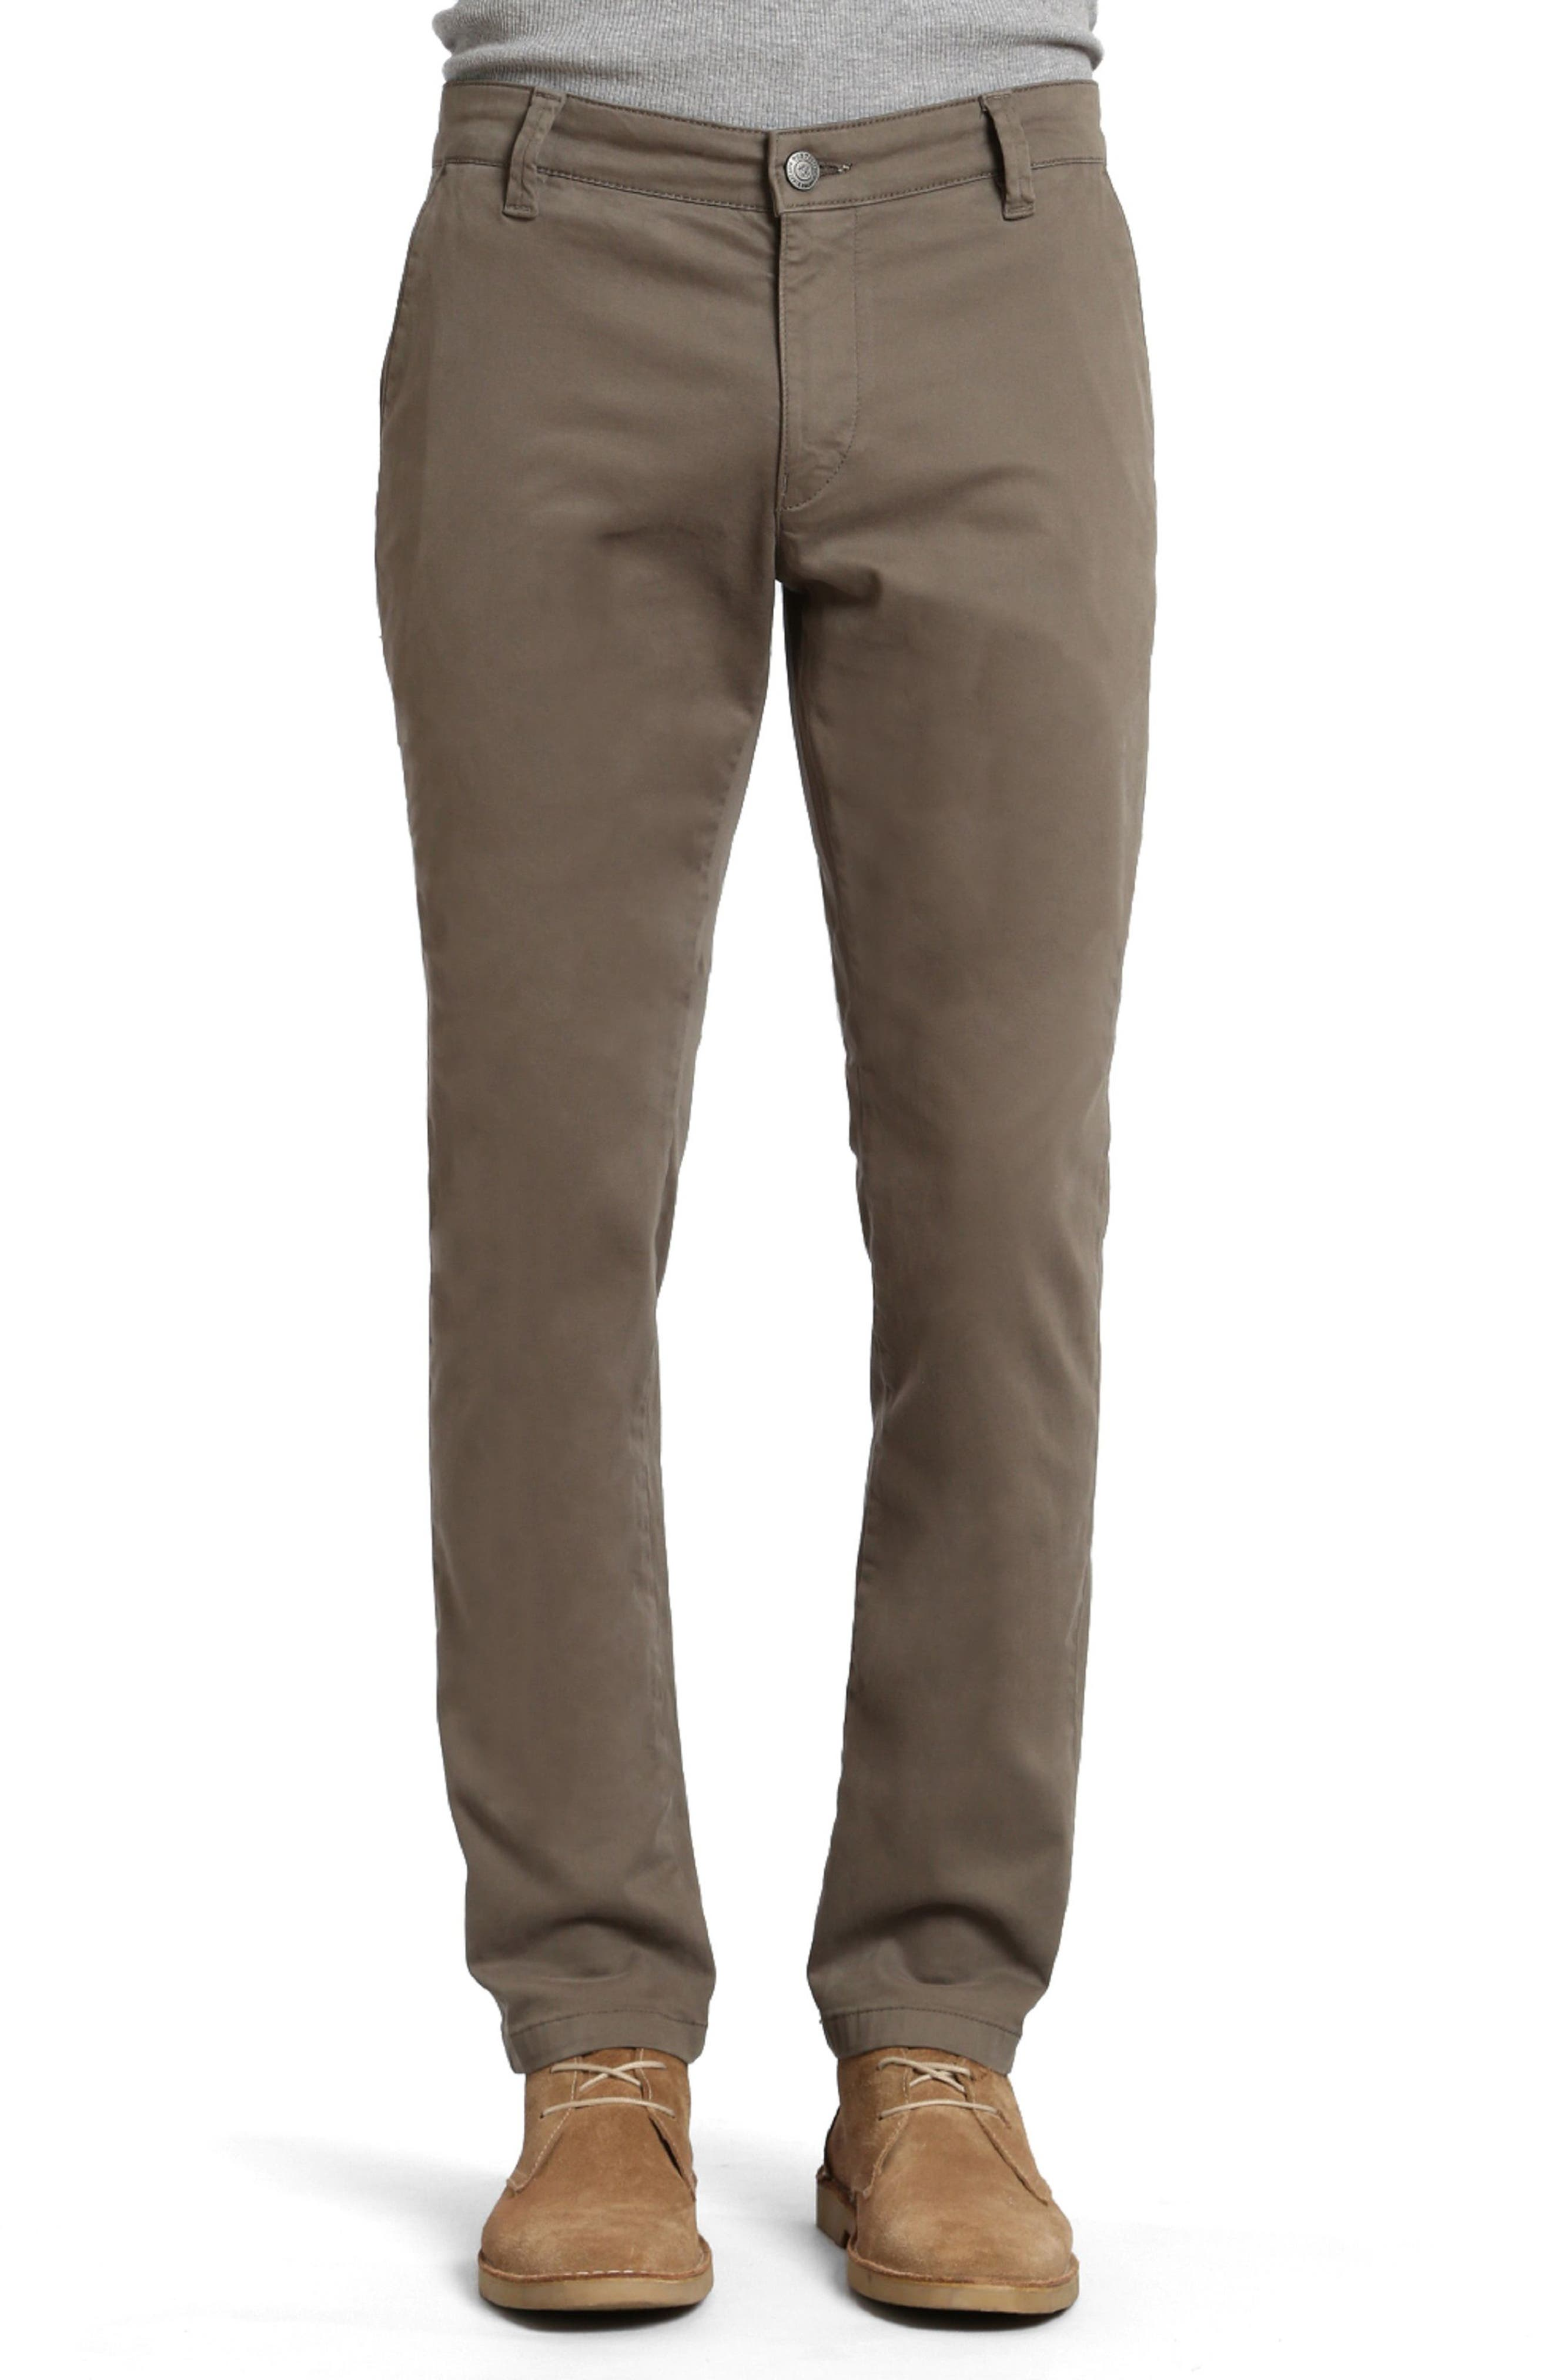 Johnny Twill Pants,                             Main thumbnail 1, color,                             Dusty Olive Twill